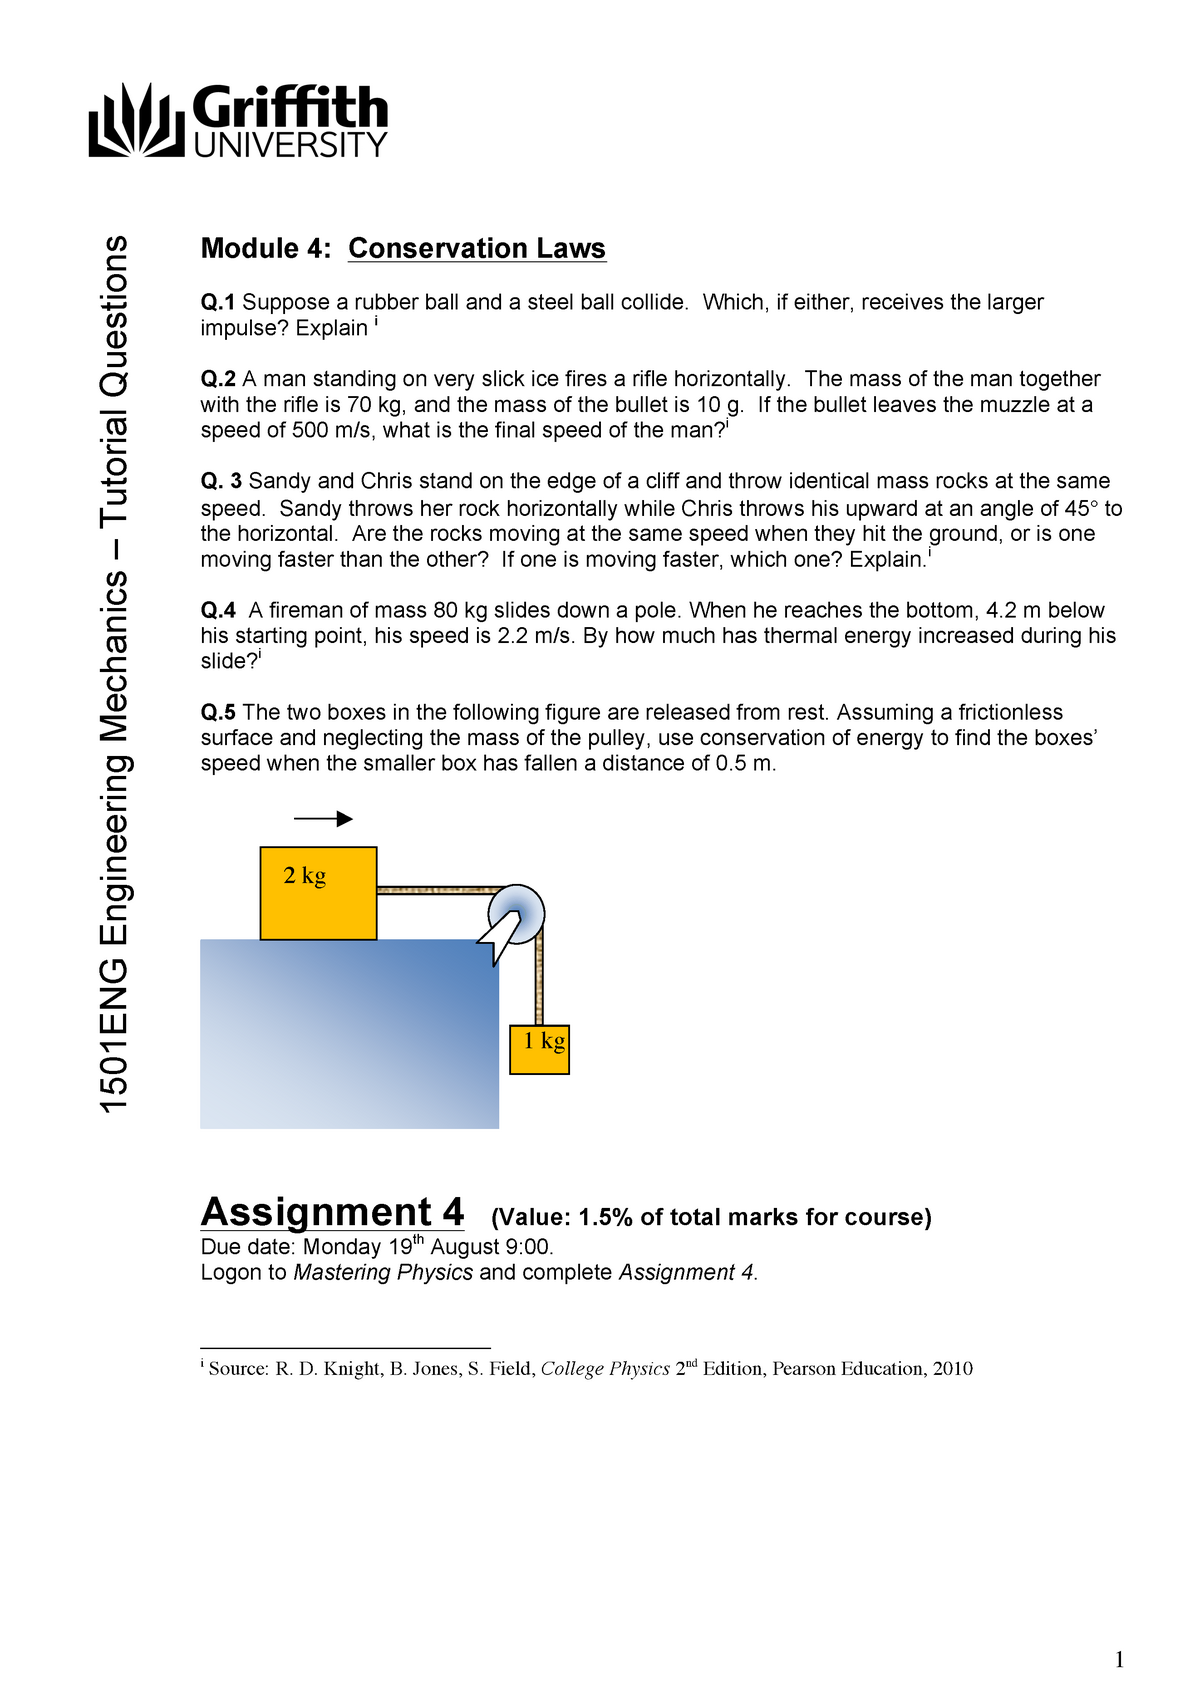 Tutorial work - 4 - Conservation Laws - Questions and answers - 2013